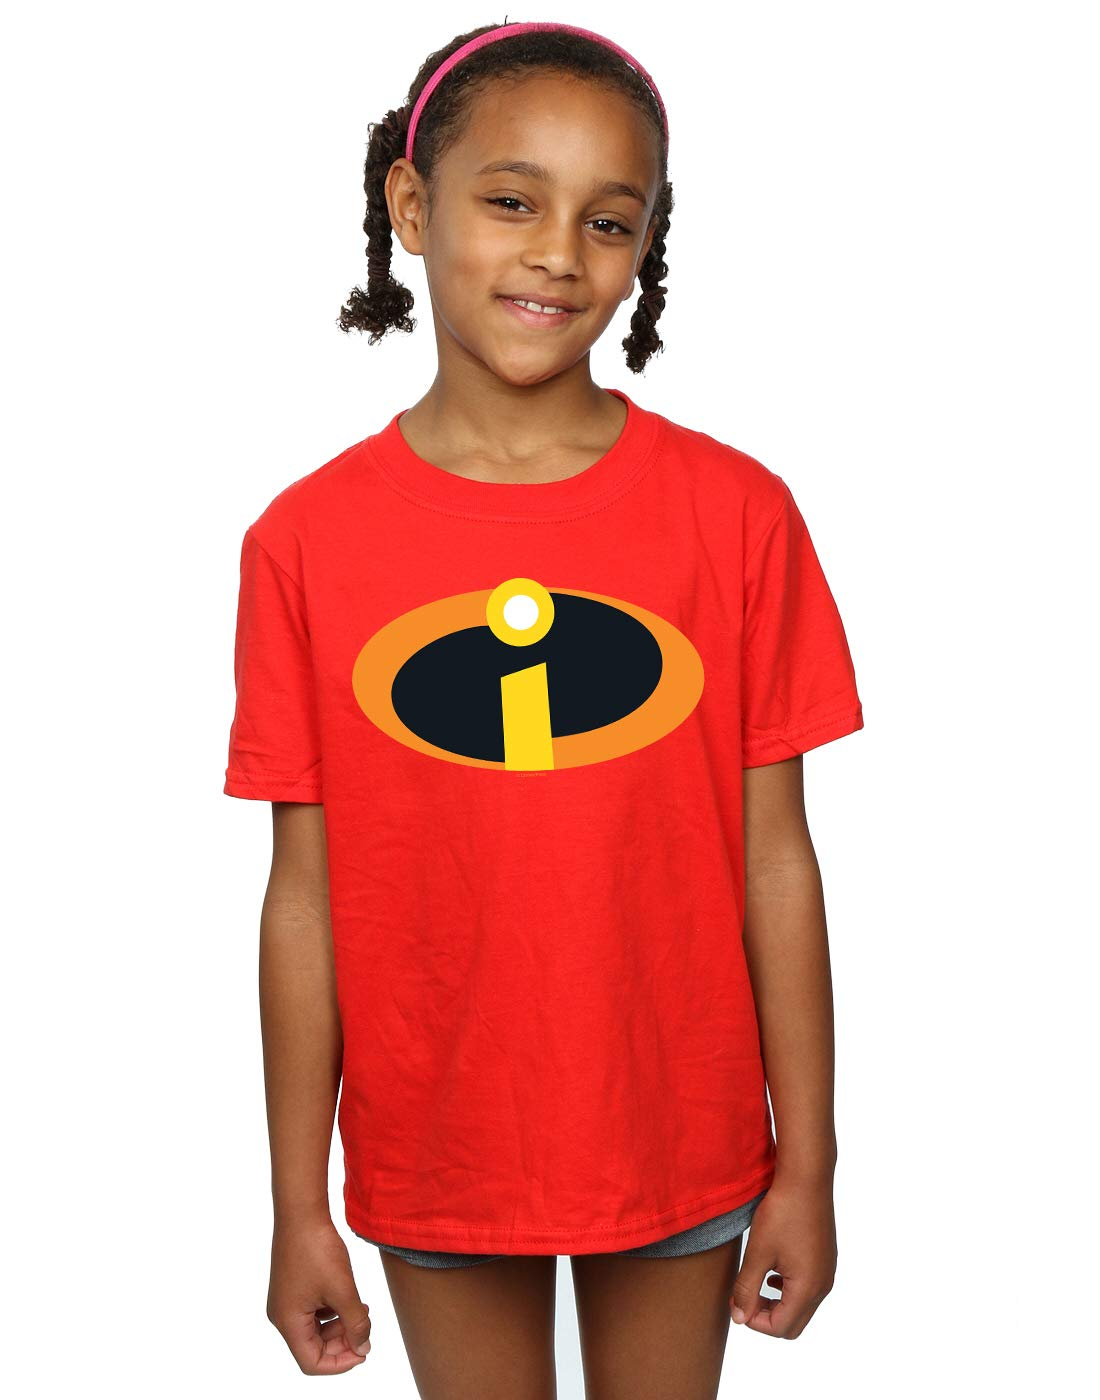 Disney Girls The Incredibles 2 Costume Logo T-Shirt Absolute Cult